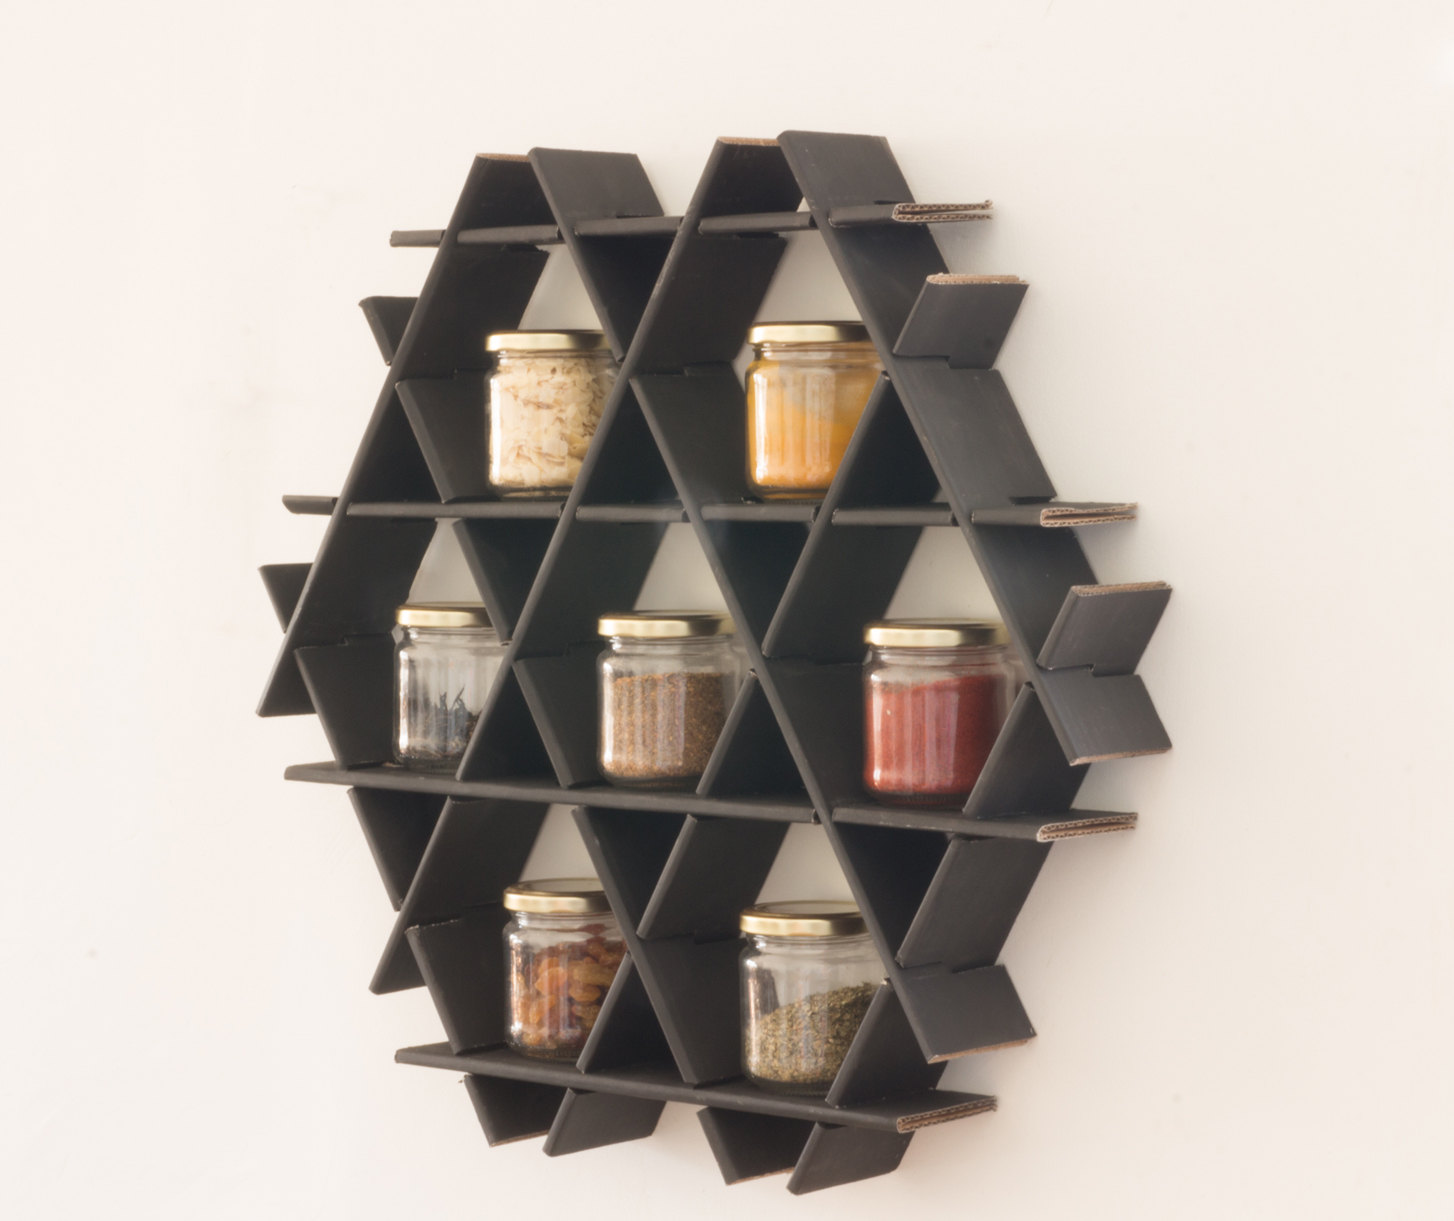 Creative Spice Storage 16 Practical Handmade Spice Rack Ideas That Will Help You